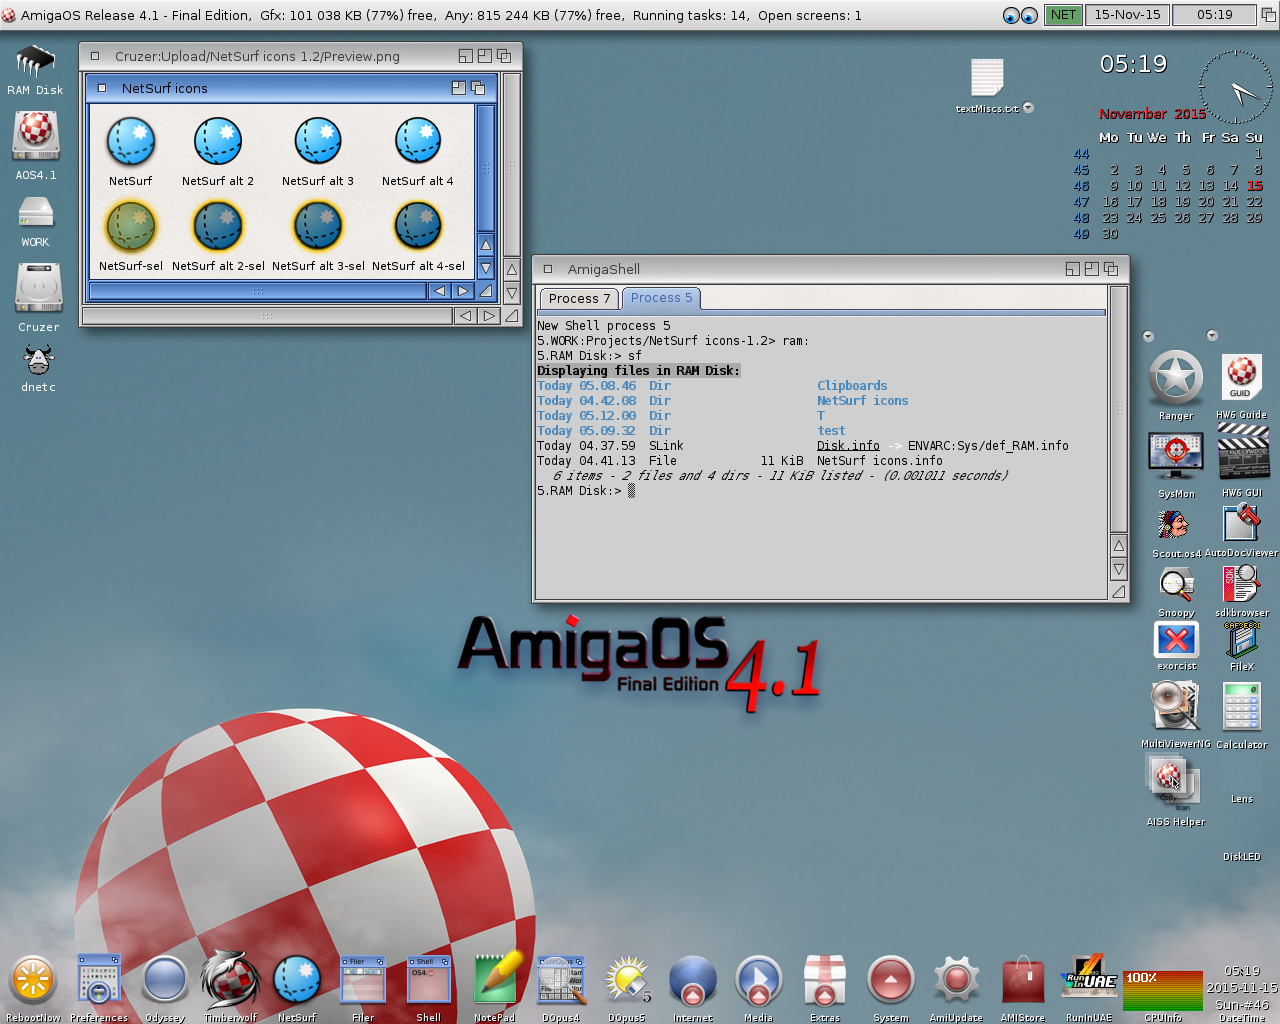 AmigaOS 4.1 FE-NetSurf icons and sf (ShowFiles) in tabbed Shell